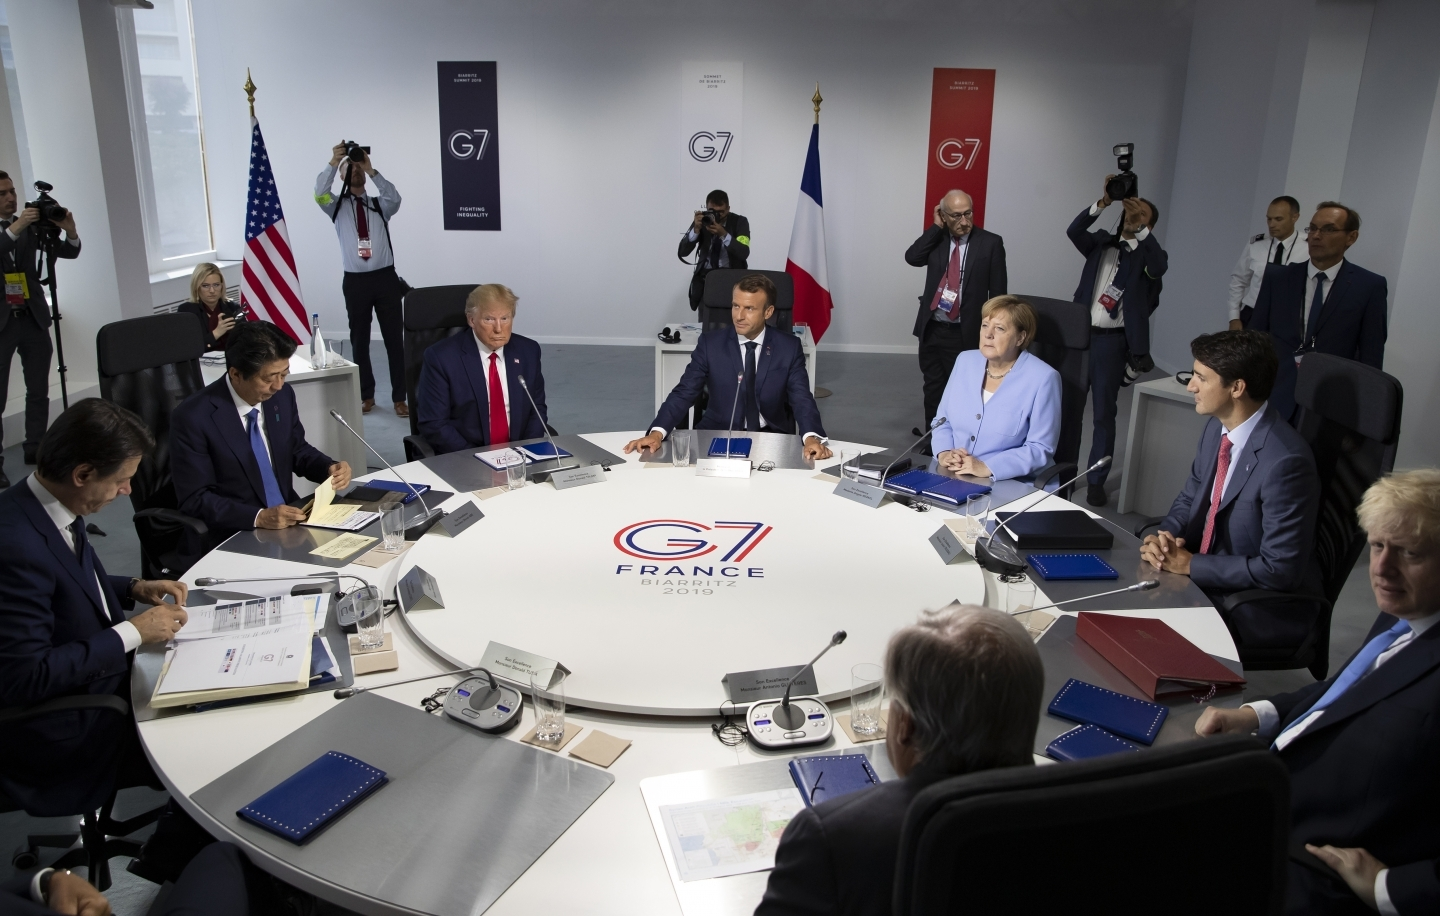 Group of Seven leaders attend a work session during summit in Biarritz, France on August 26, 2019. (Ian Langsdon, Pool via AP)